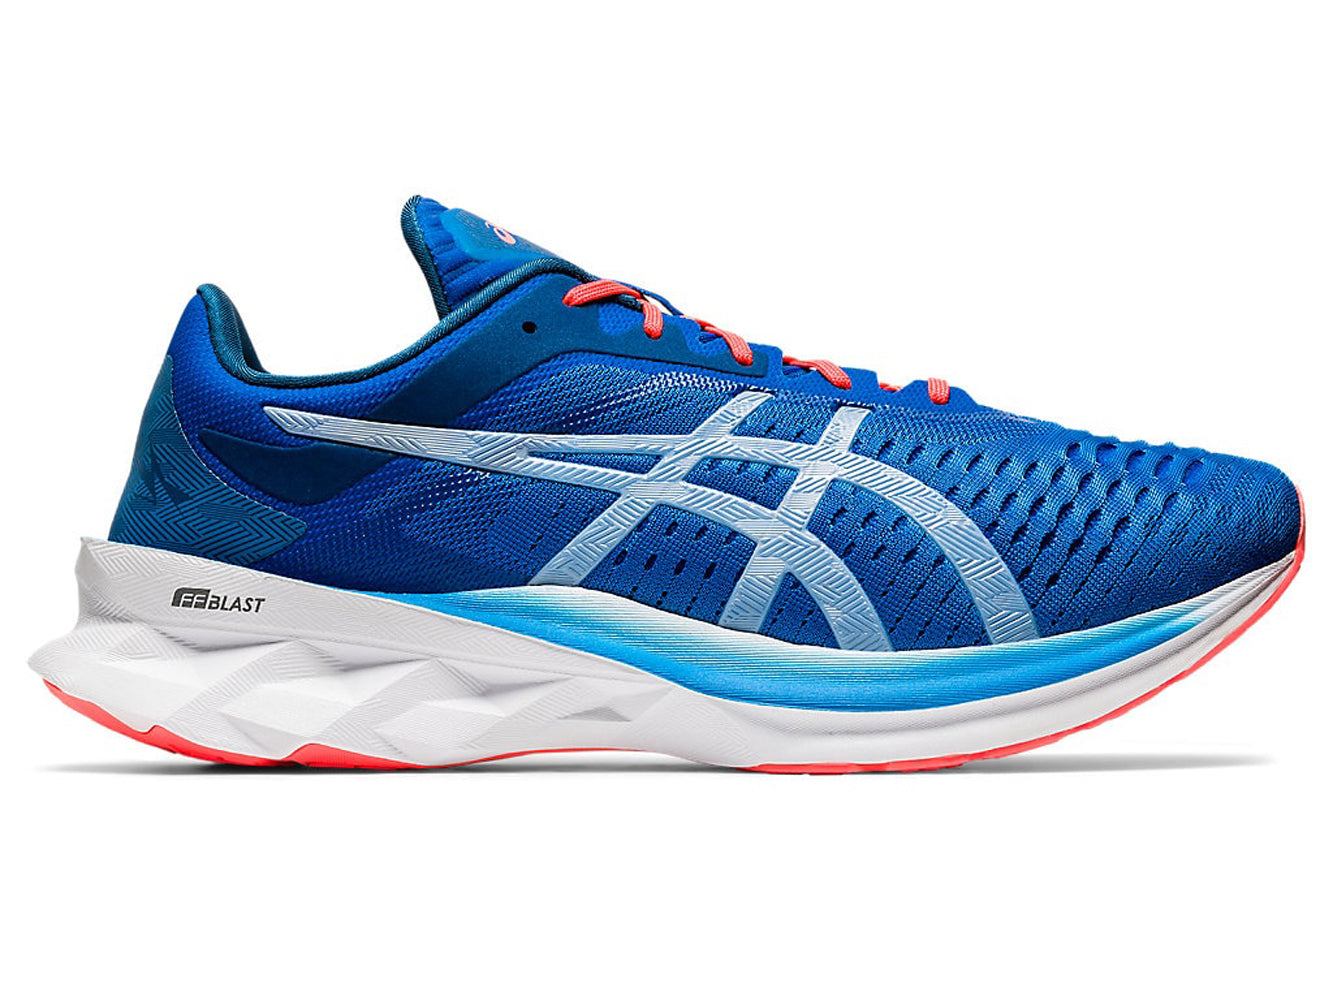 Men's Asics Novablast Running Shoe in Directoire Blue/White from the side